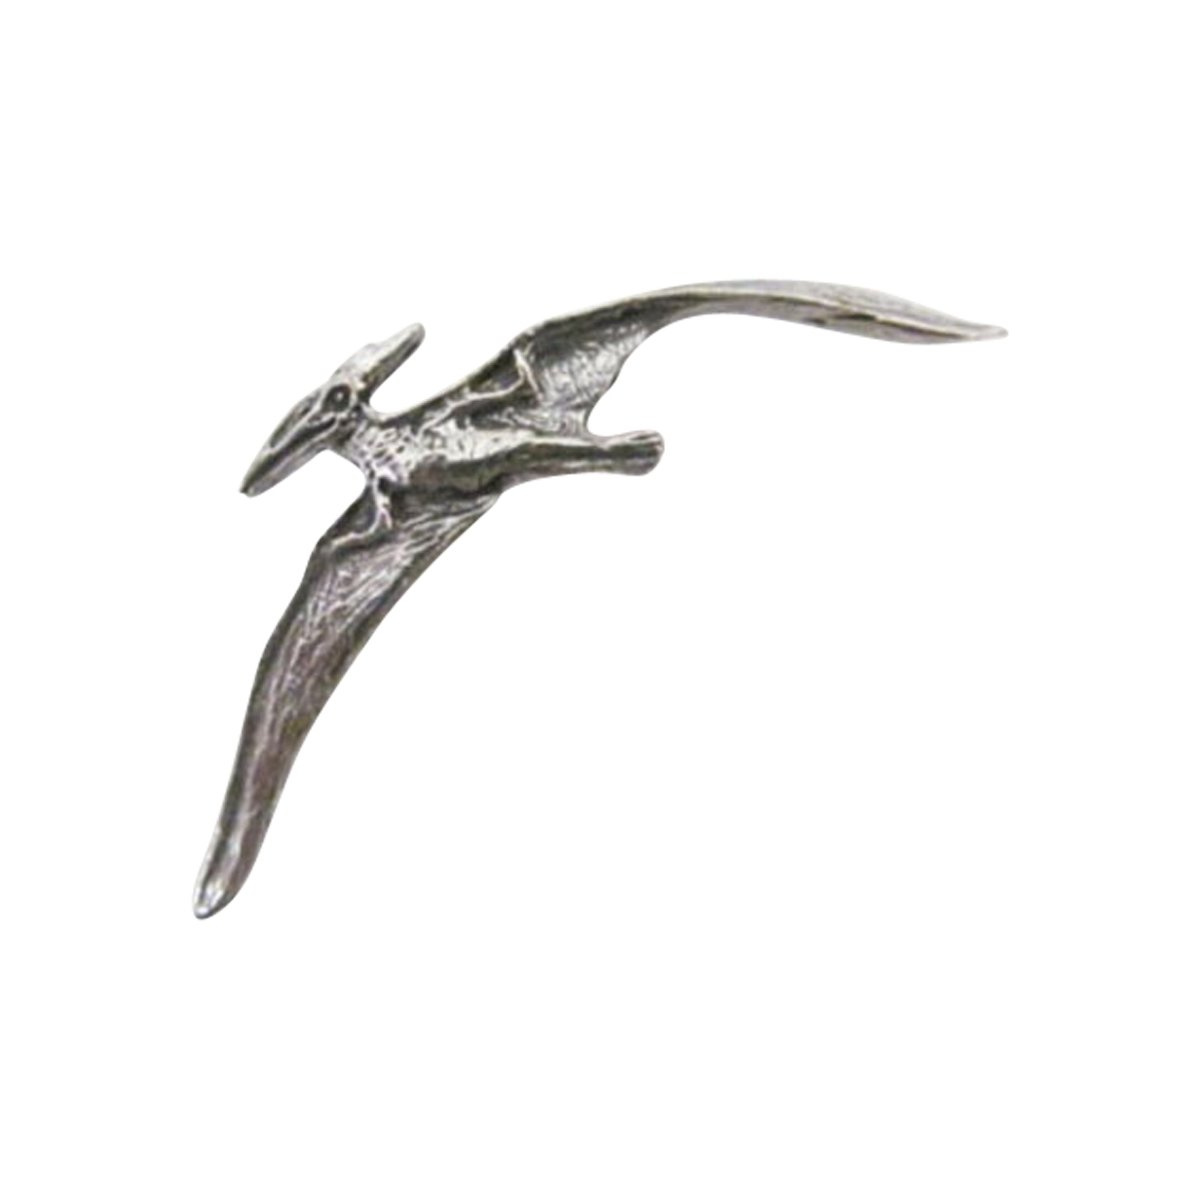 Creative Pewter Designs, Pewter Pterodactyl Flying Lapel Pin Brooch, Antiqued Finish, A190